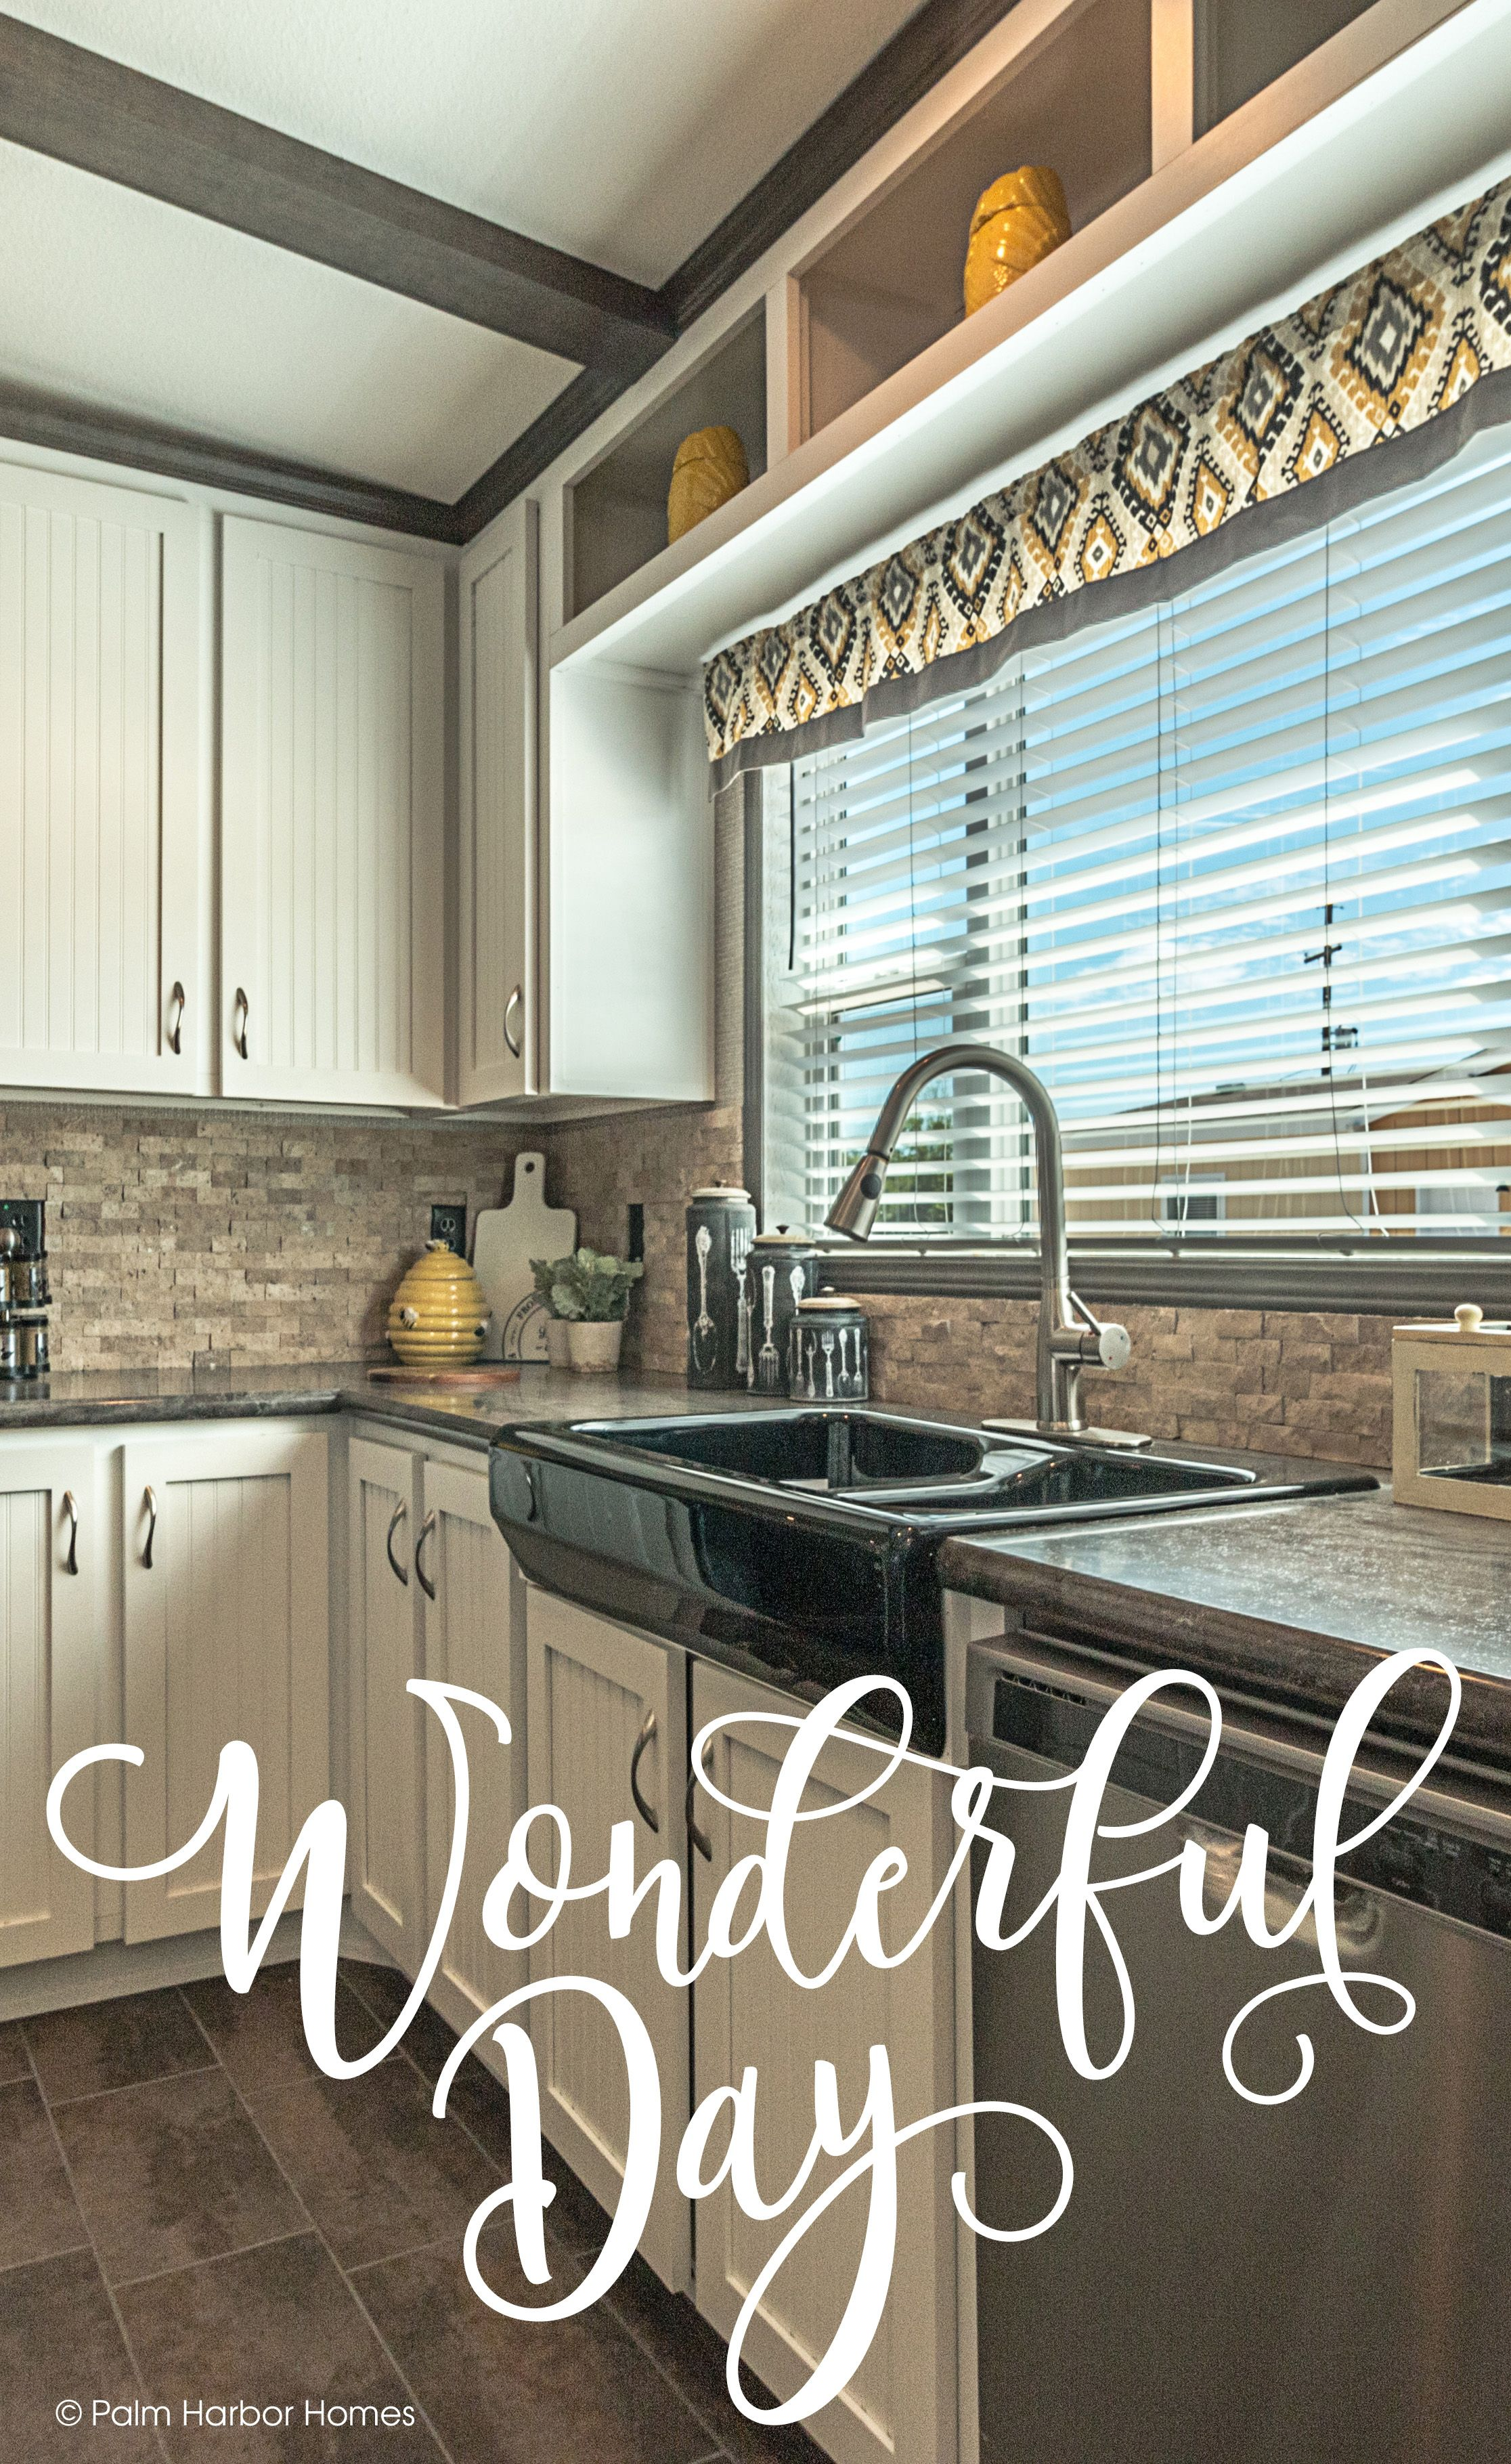 Make it a wonderful day! The Carrington, 3 Bedrooms, 2